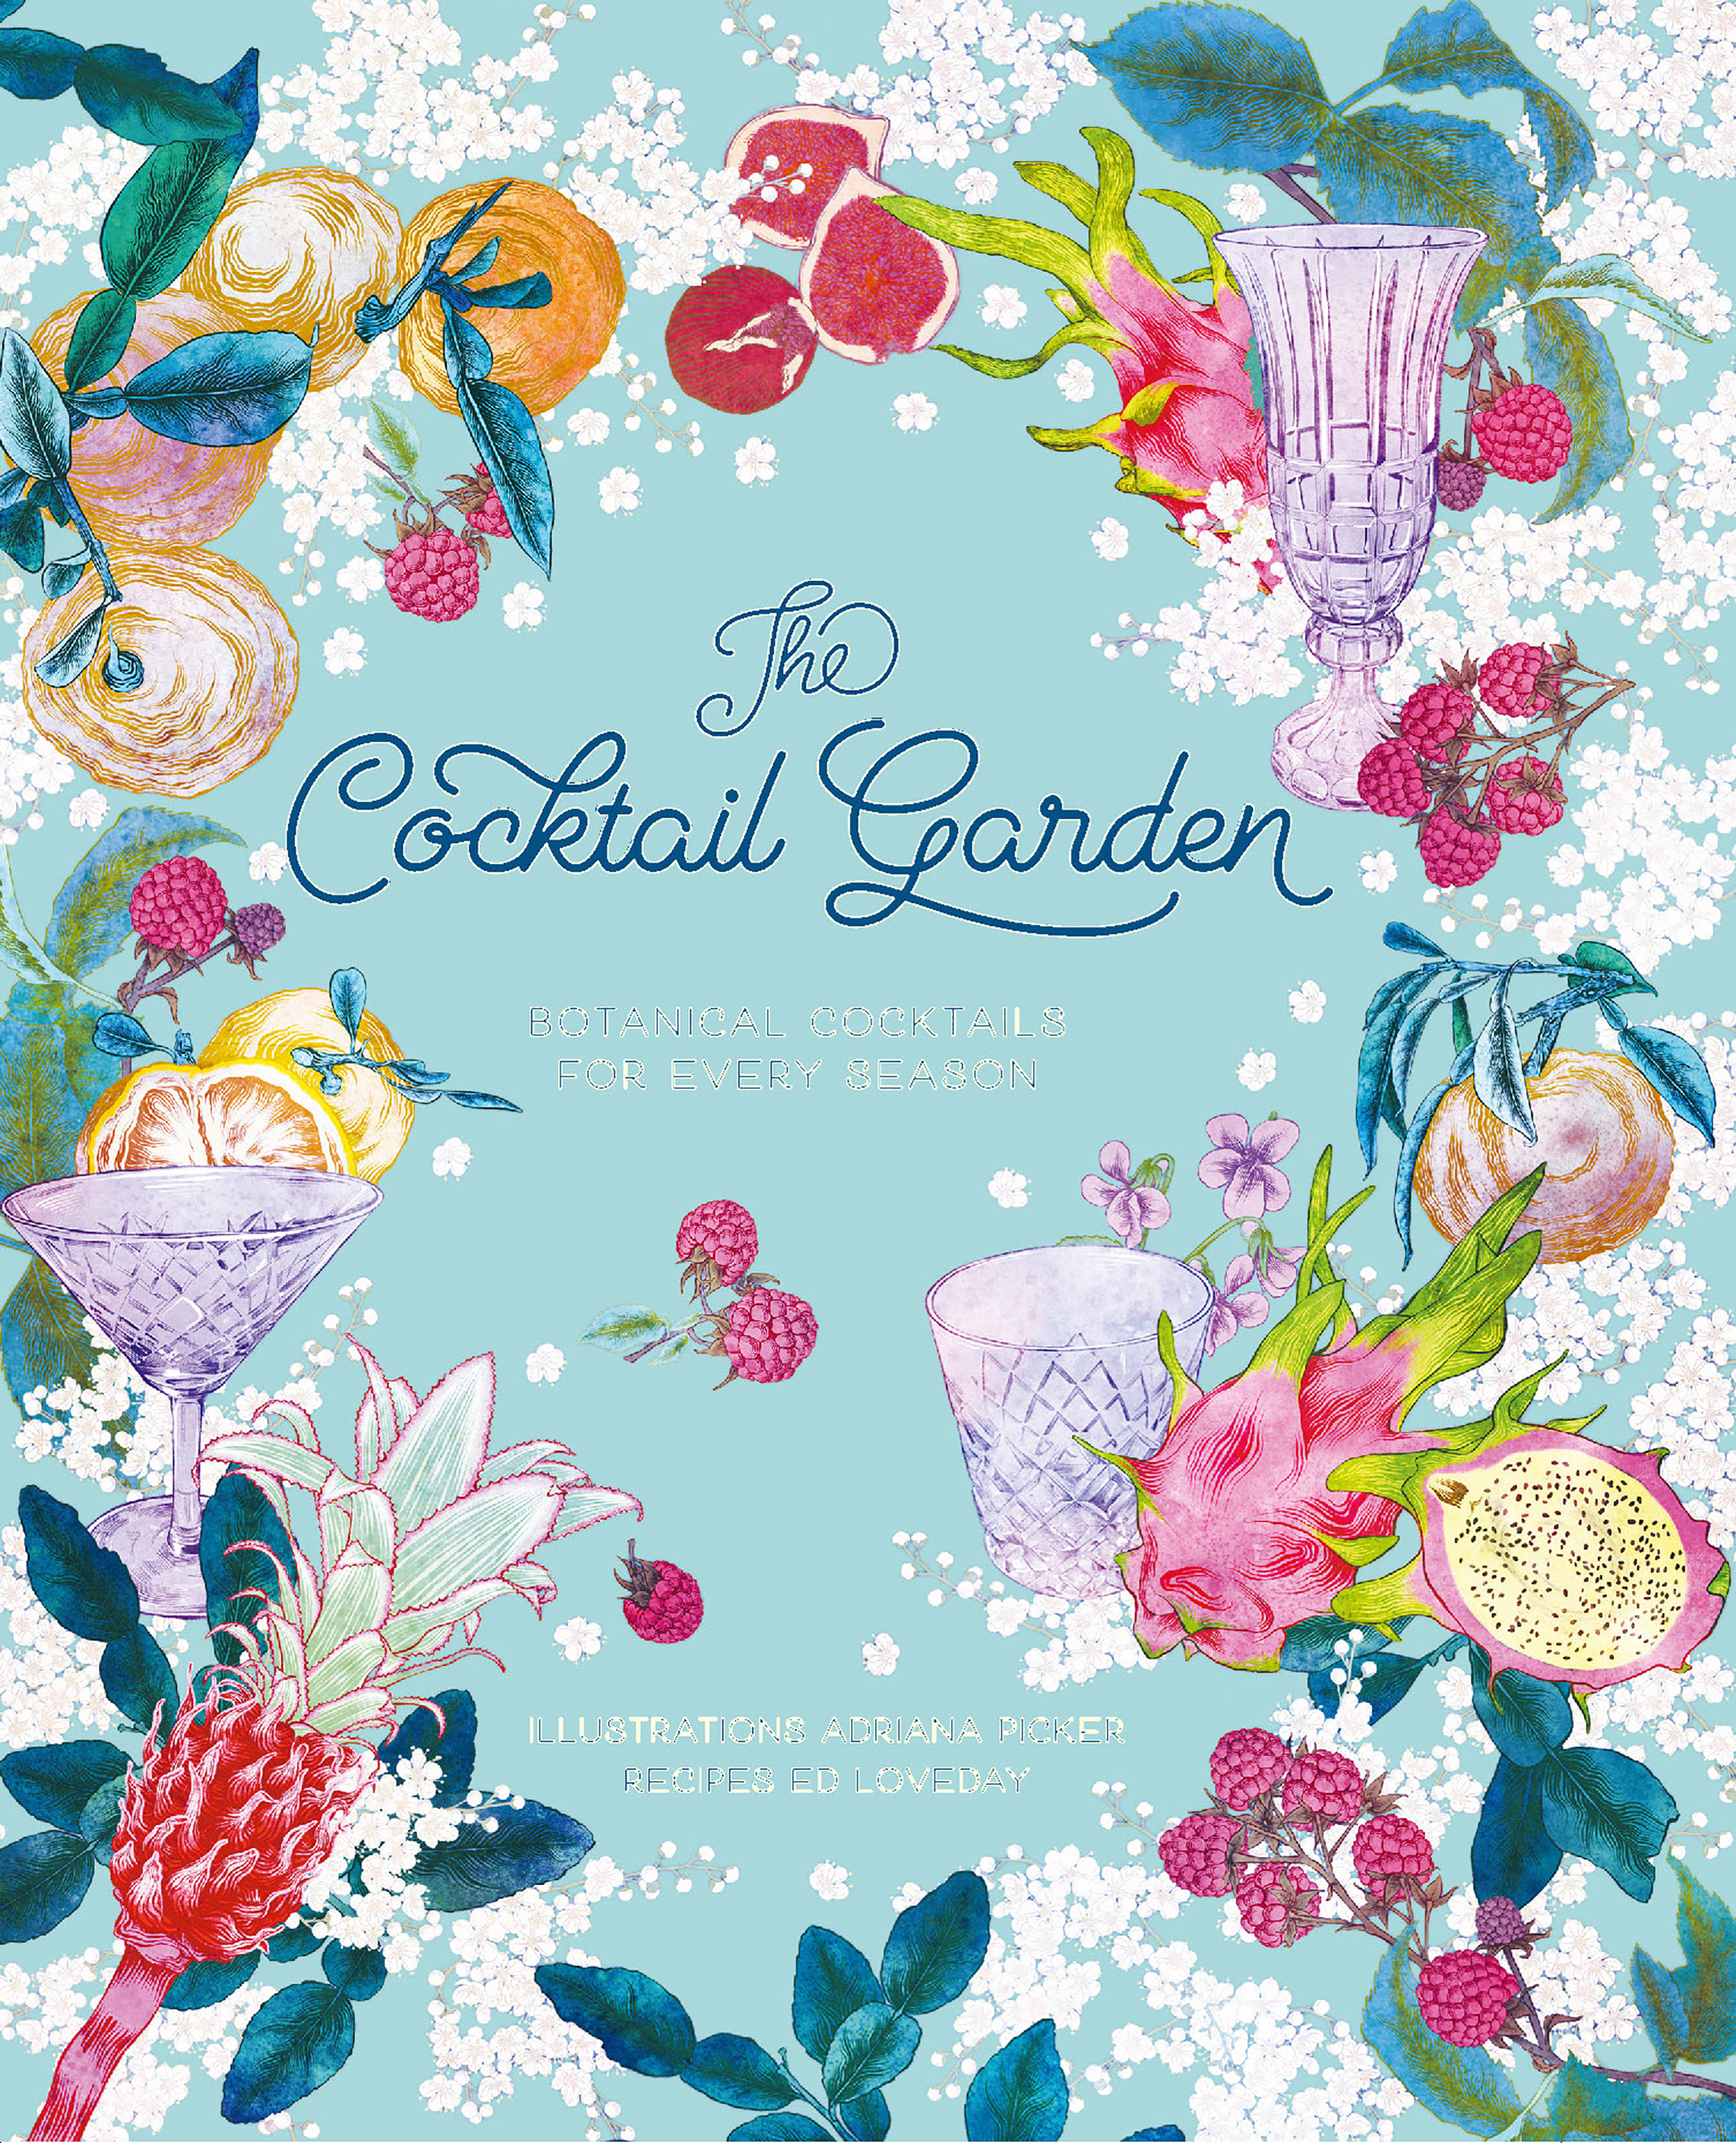 The Cocktail Garden